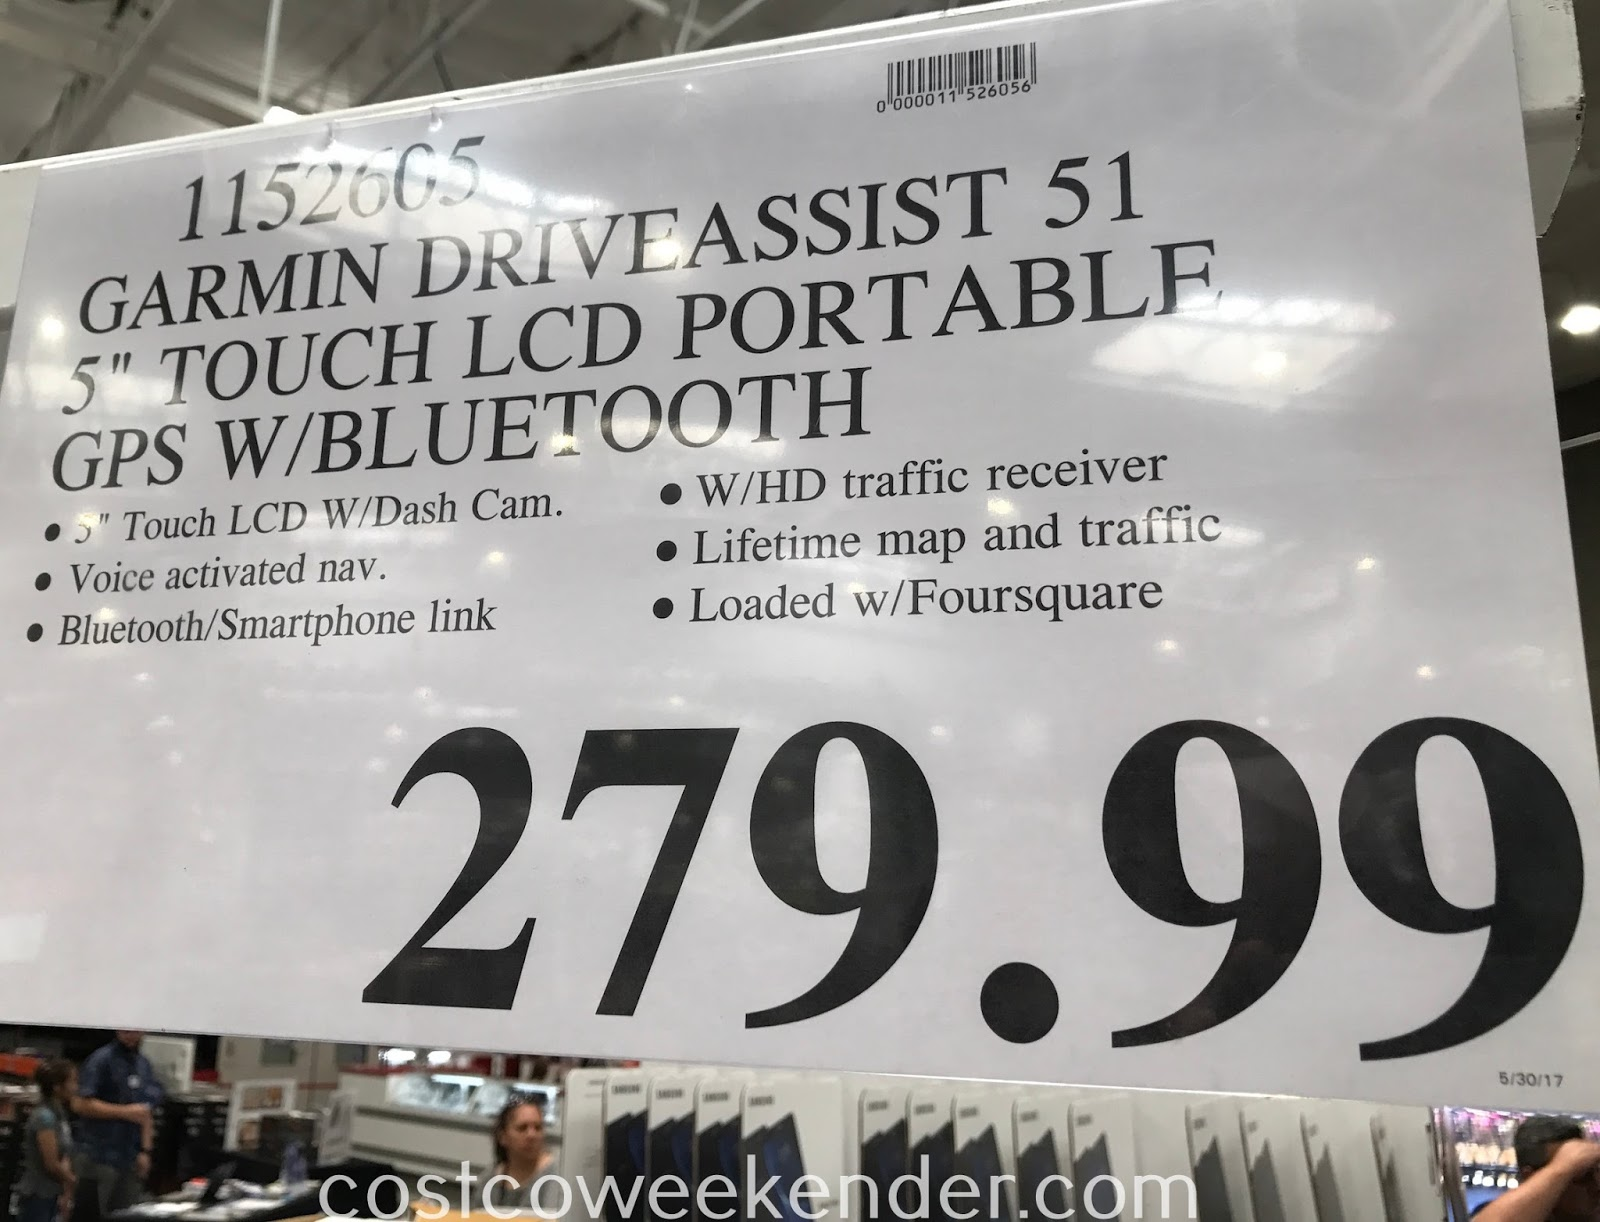 Deal for the Garmin DriveAssist 51 LMT GPS at Costco